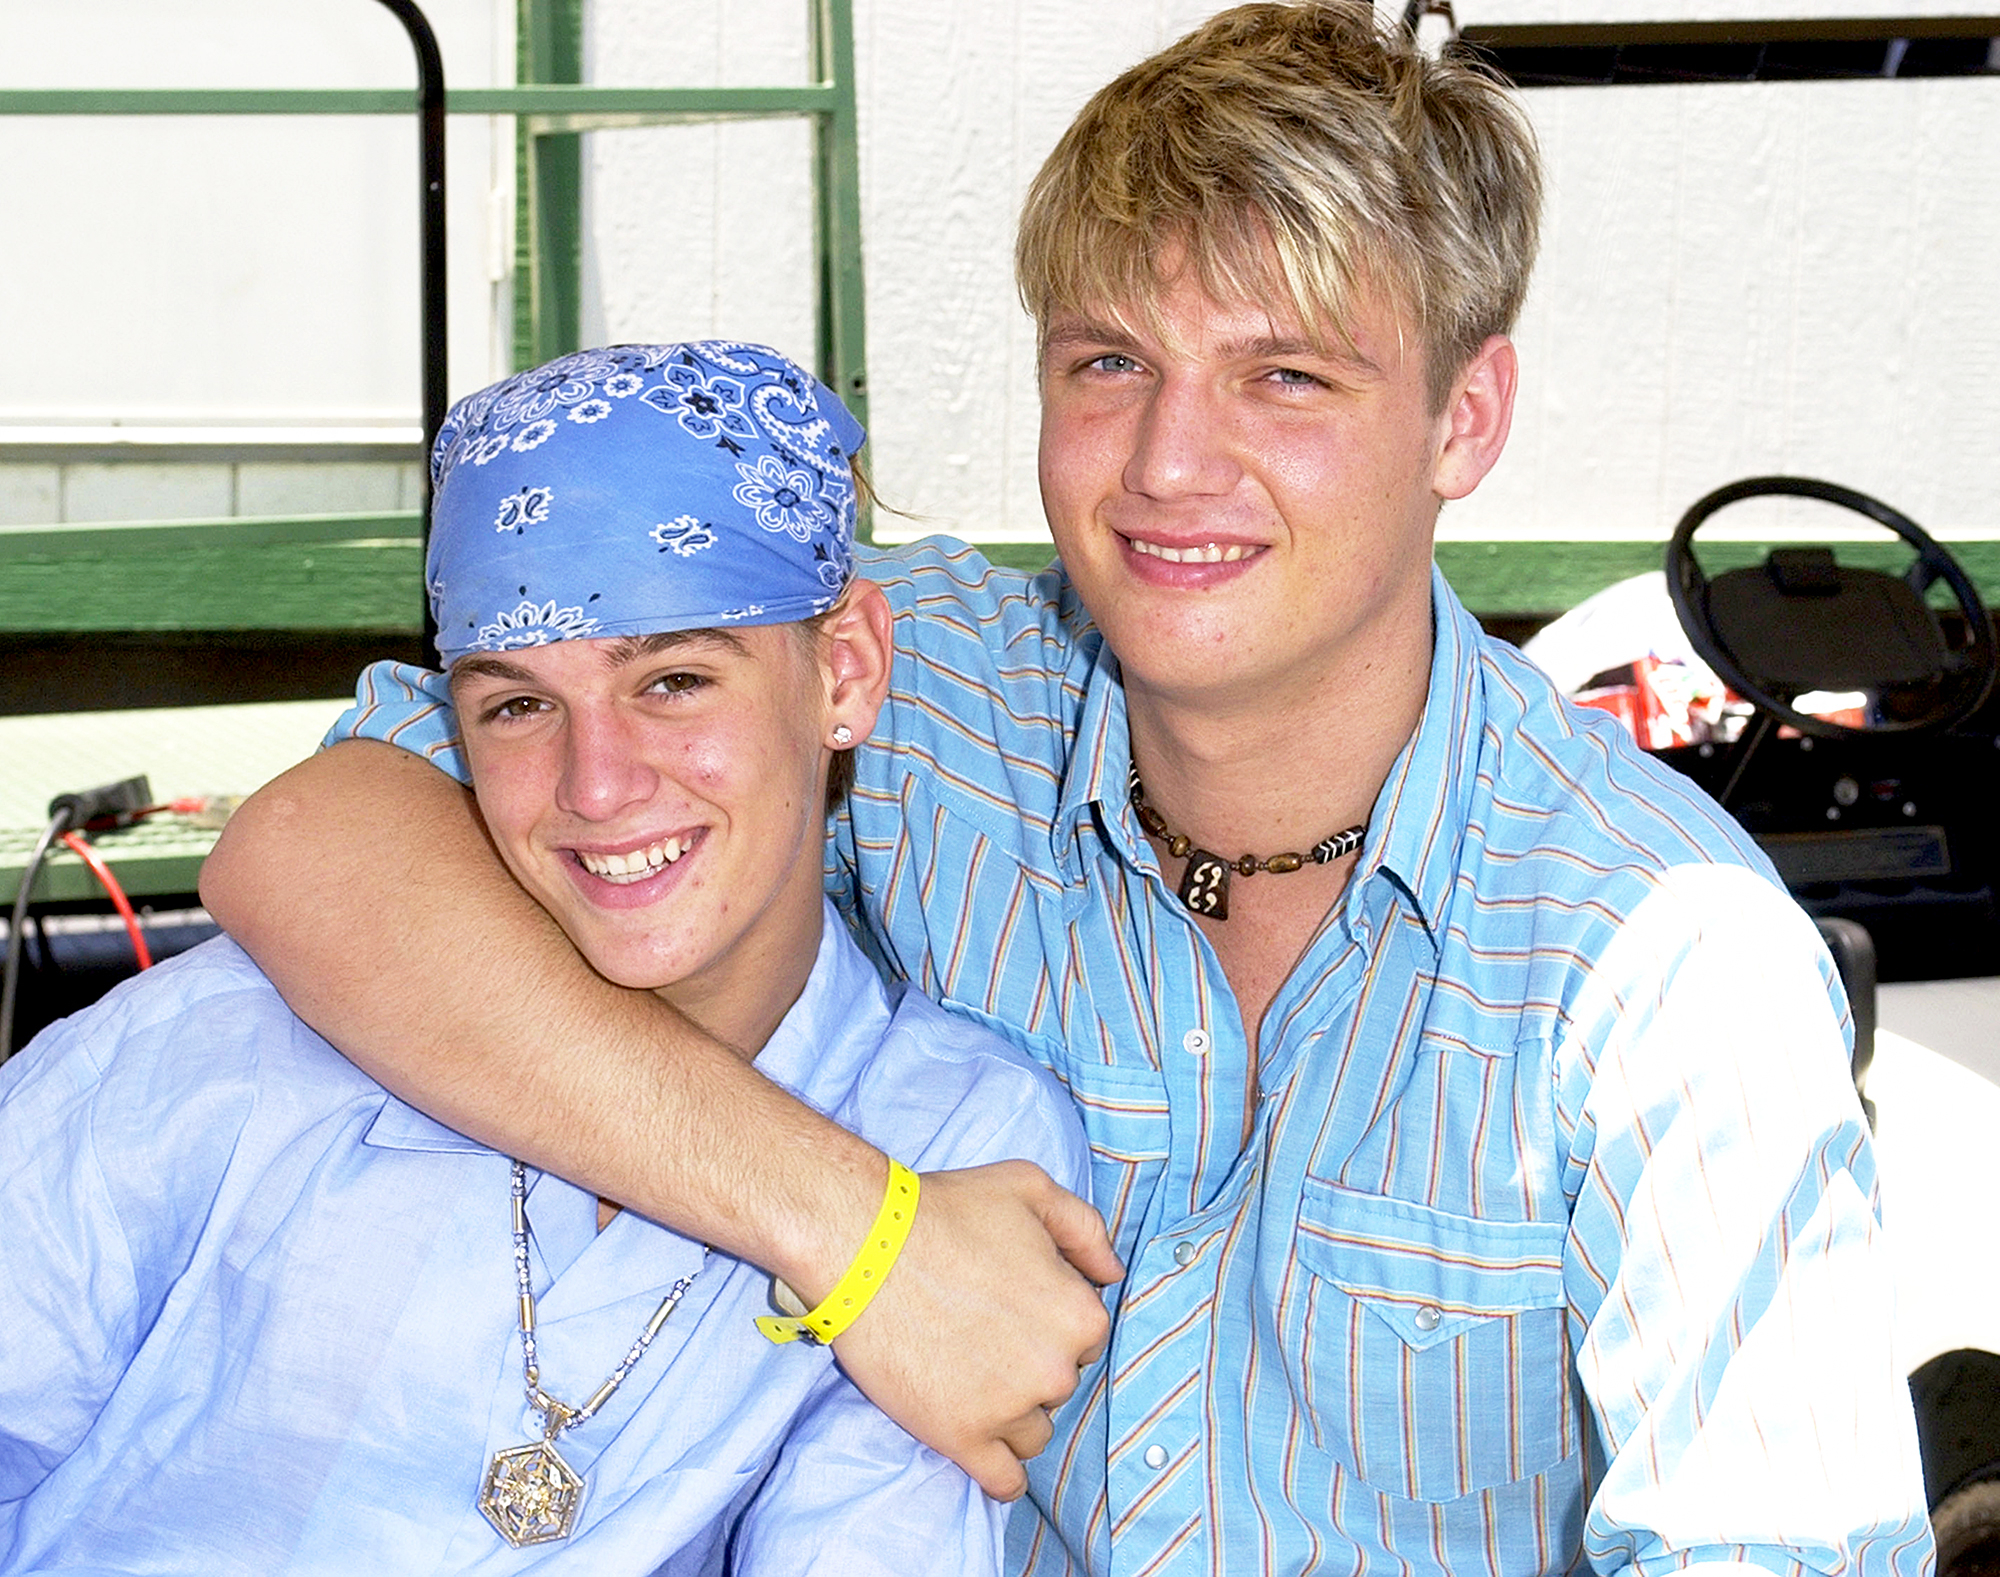 Aaron Carter and Nick Carter